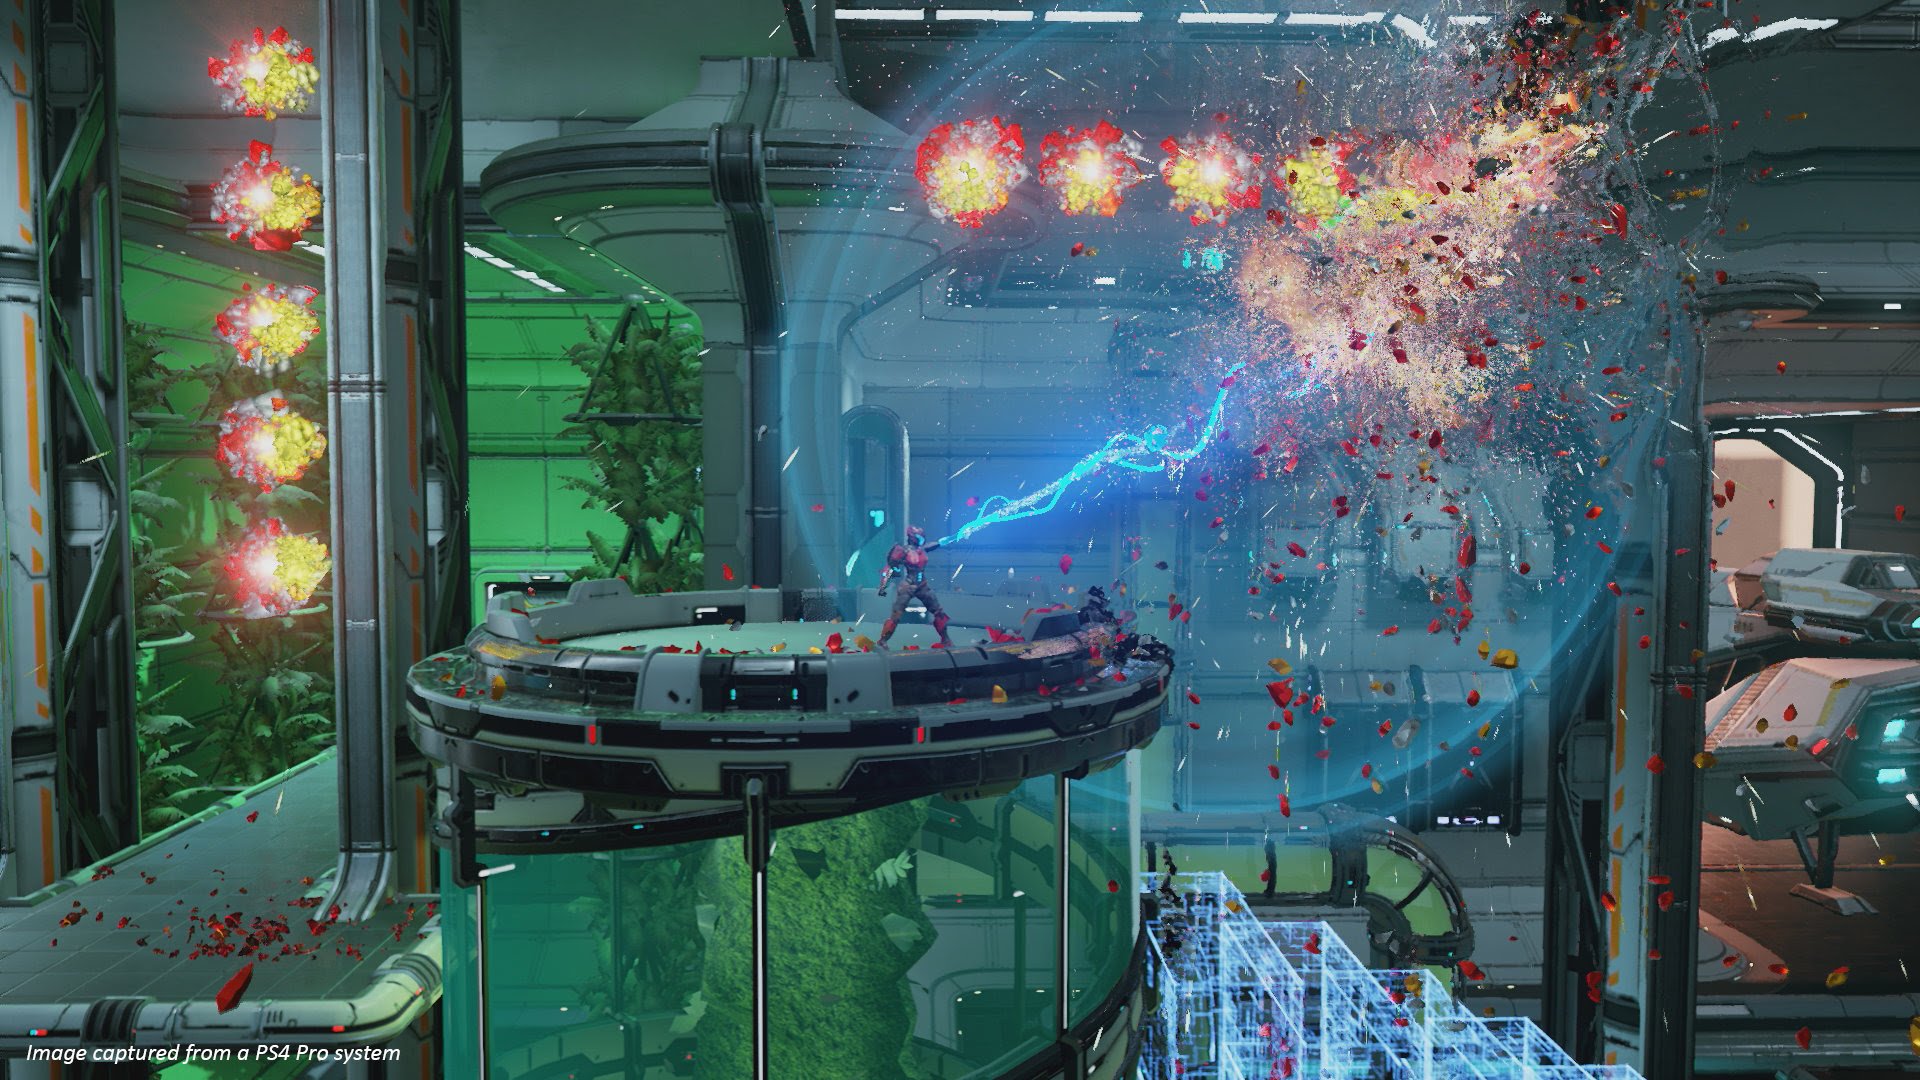 Here's a good look at Housemarque's new side-scroller Matterfall screenshot